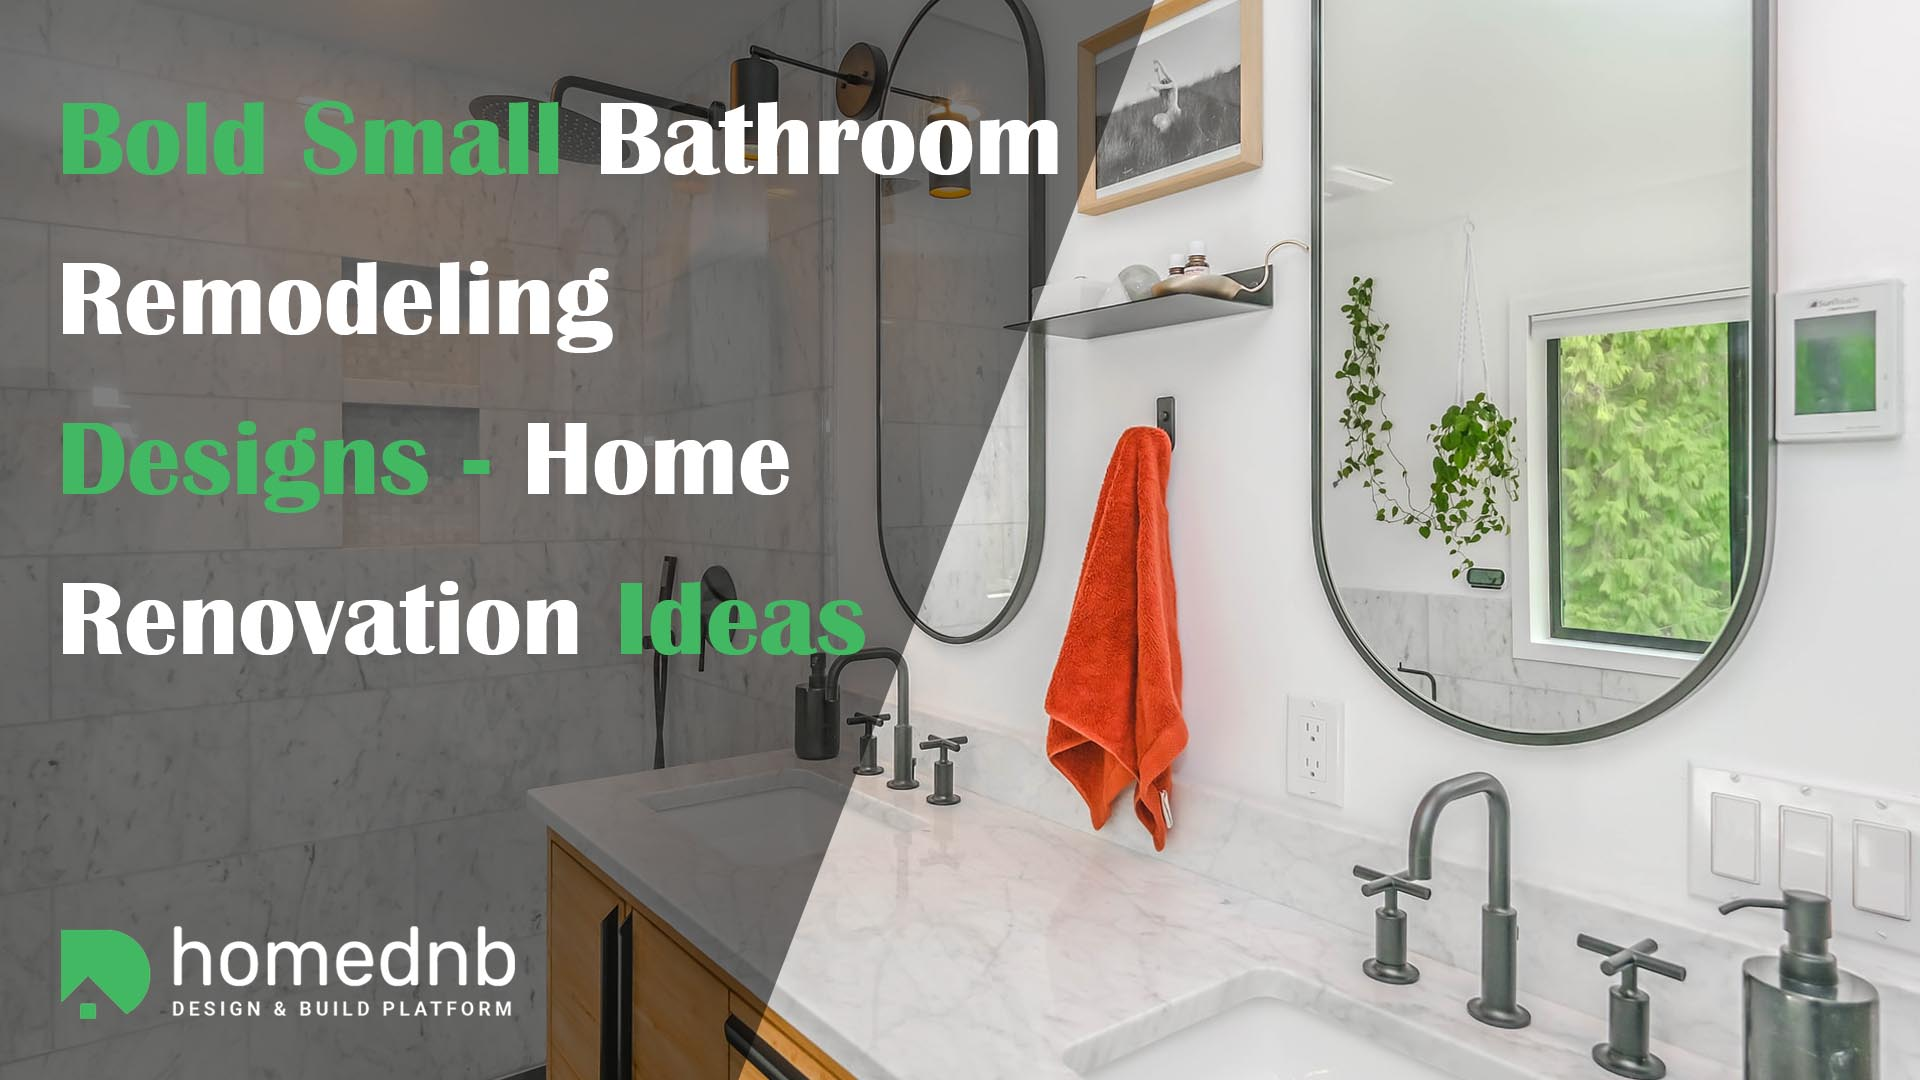 Bold Small Bathroom Remodeling Designs